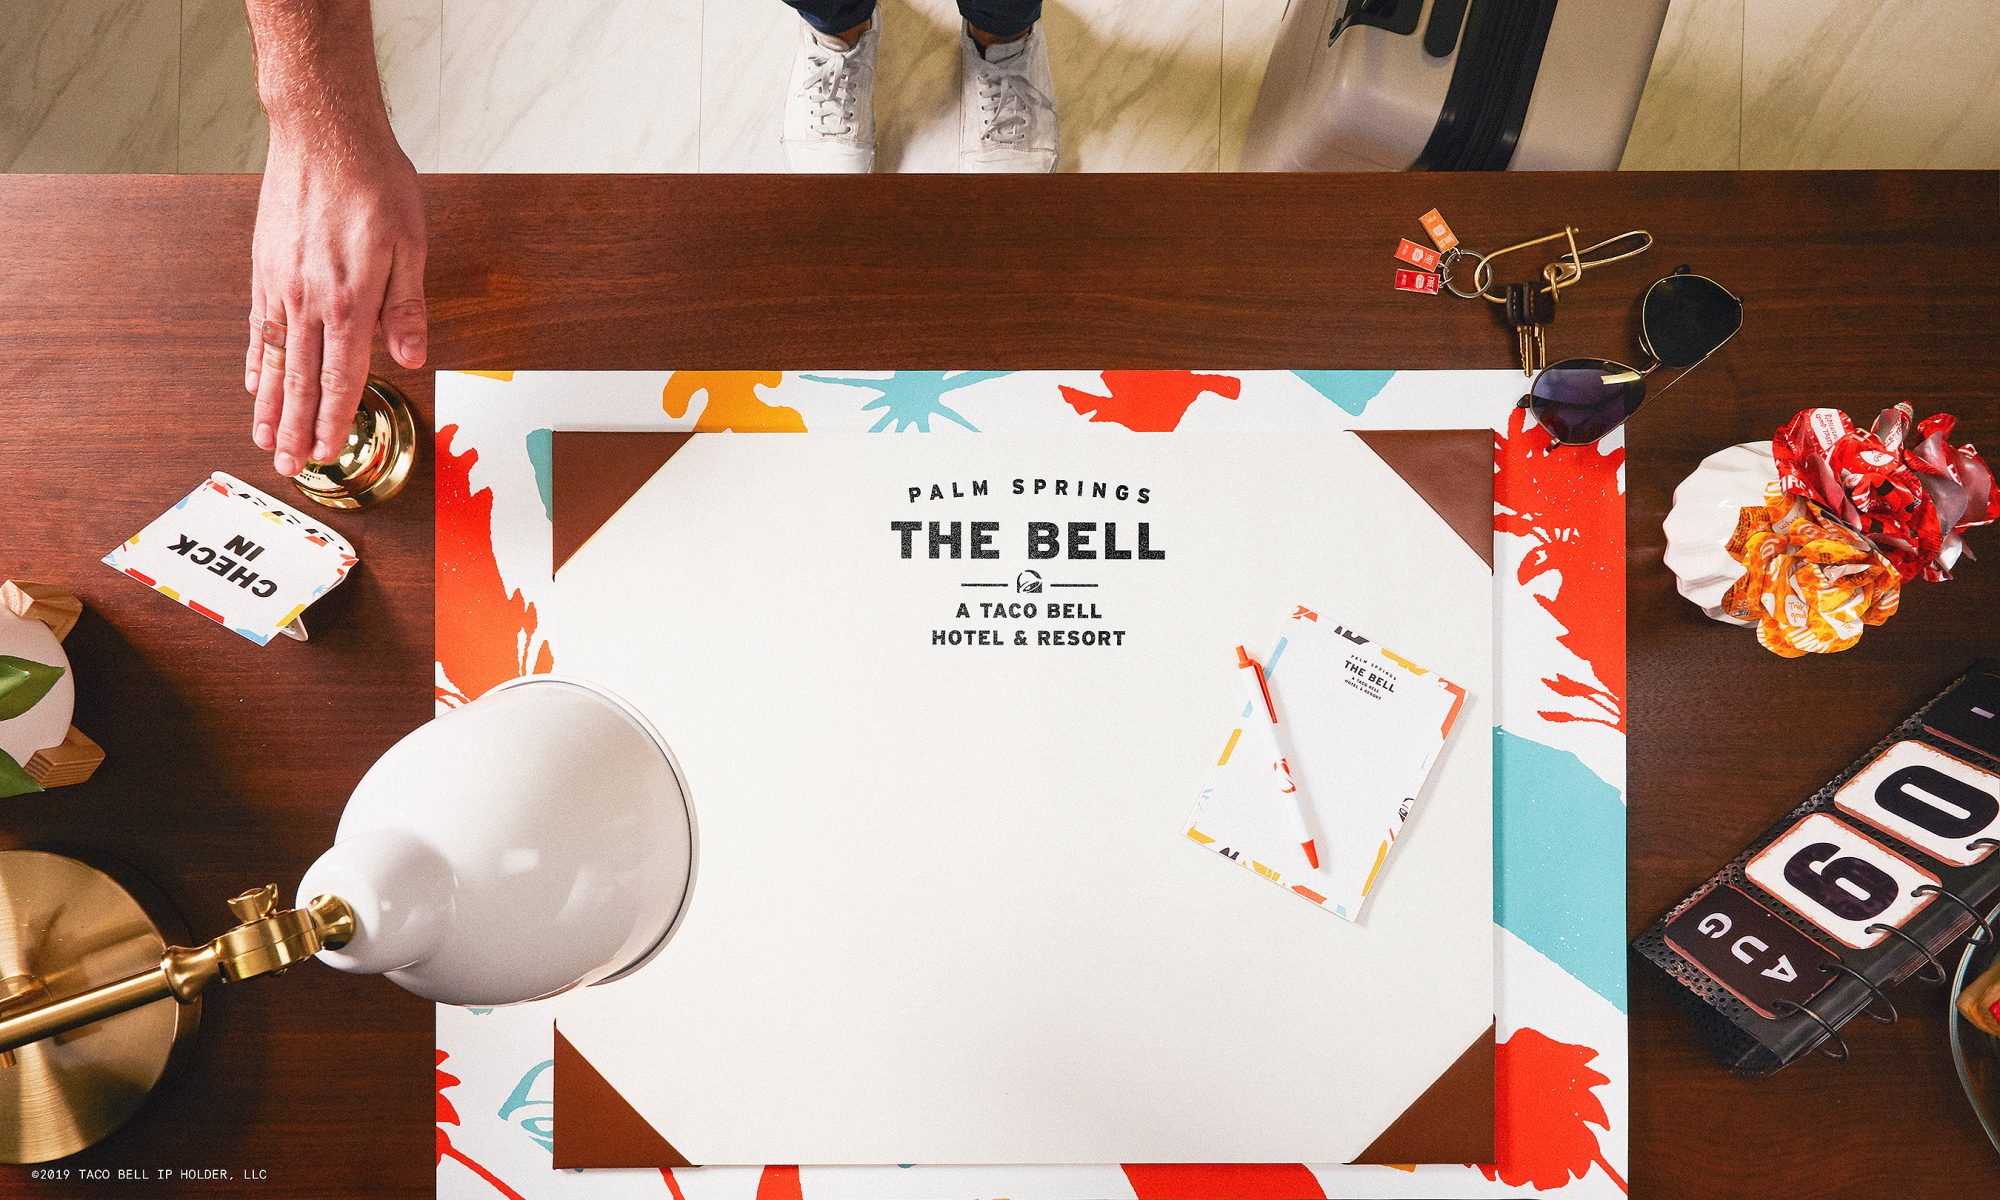 The Bell Taco Bell Hotel